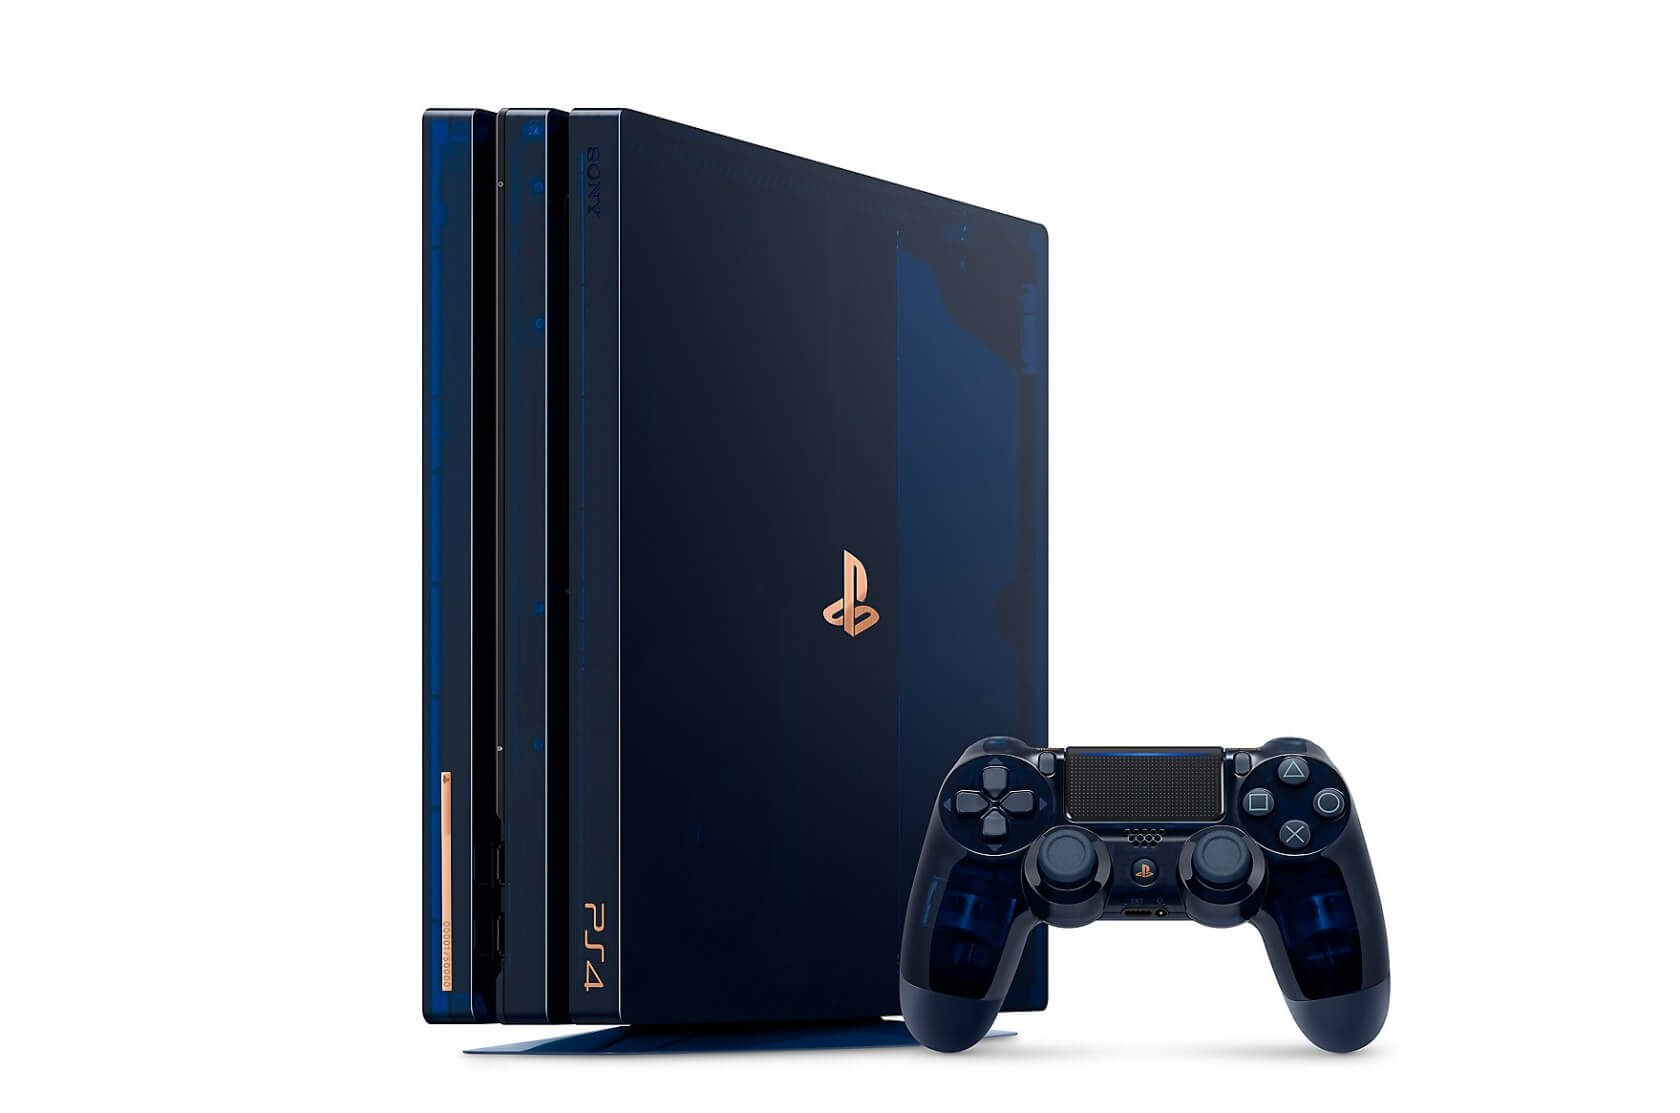 Sony Celebrates Huge Sales Milestone with Limited Edition PS4 Pro